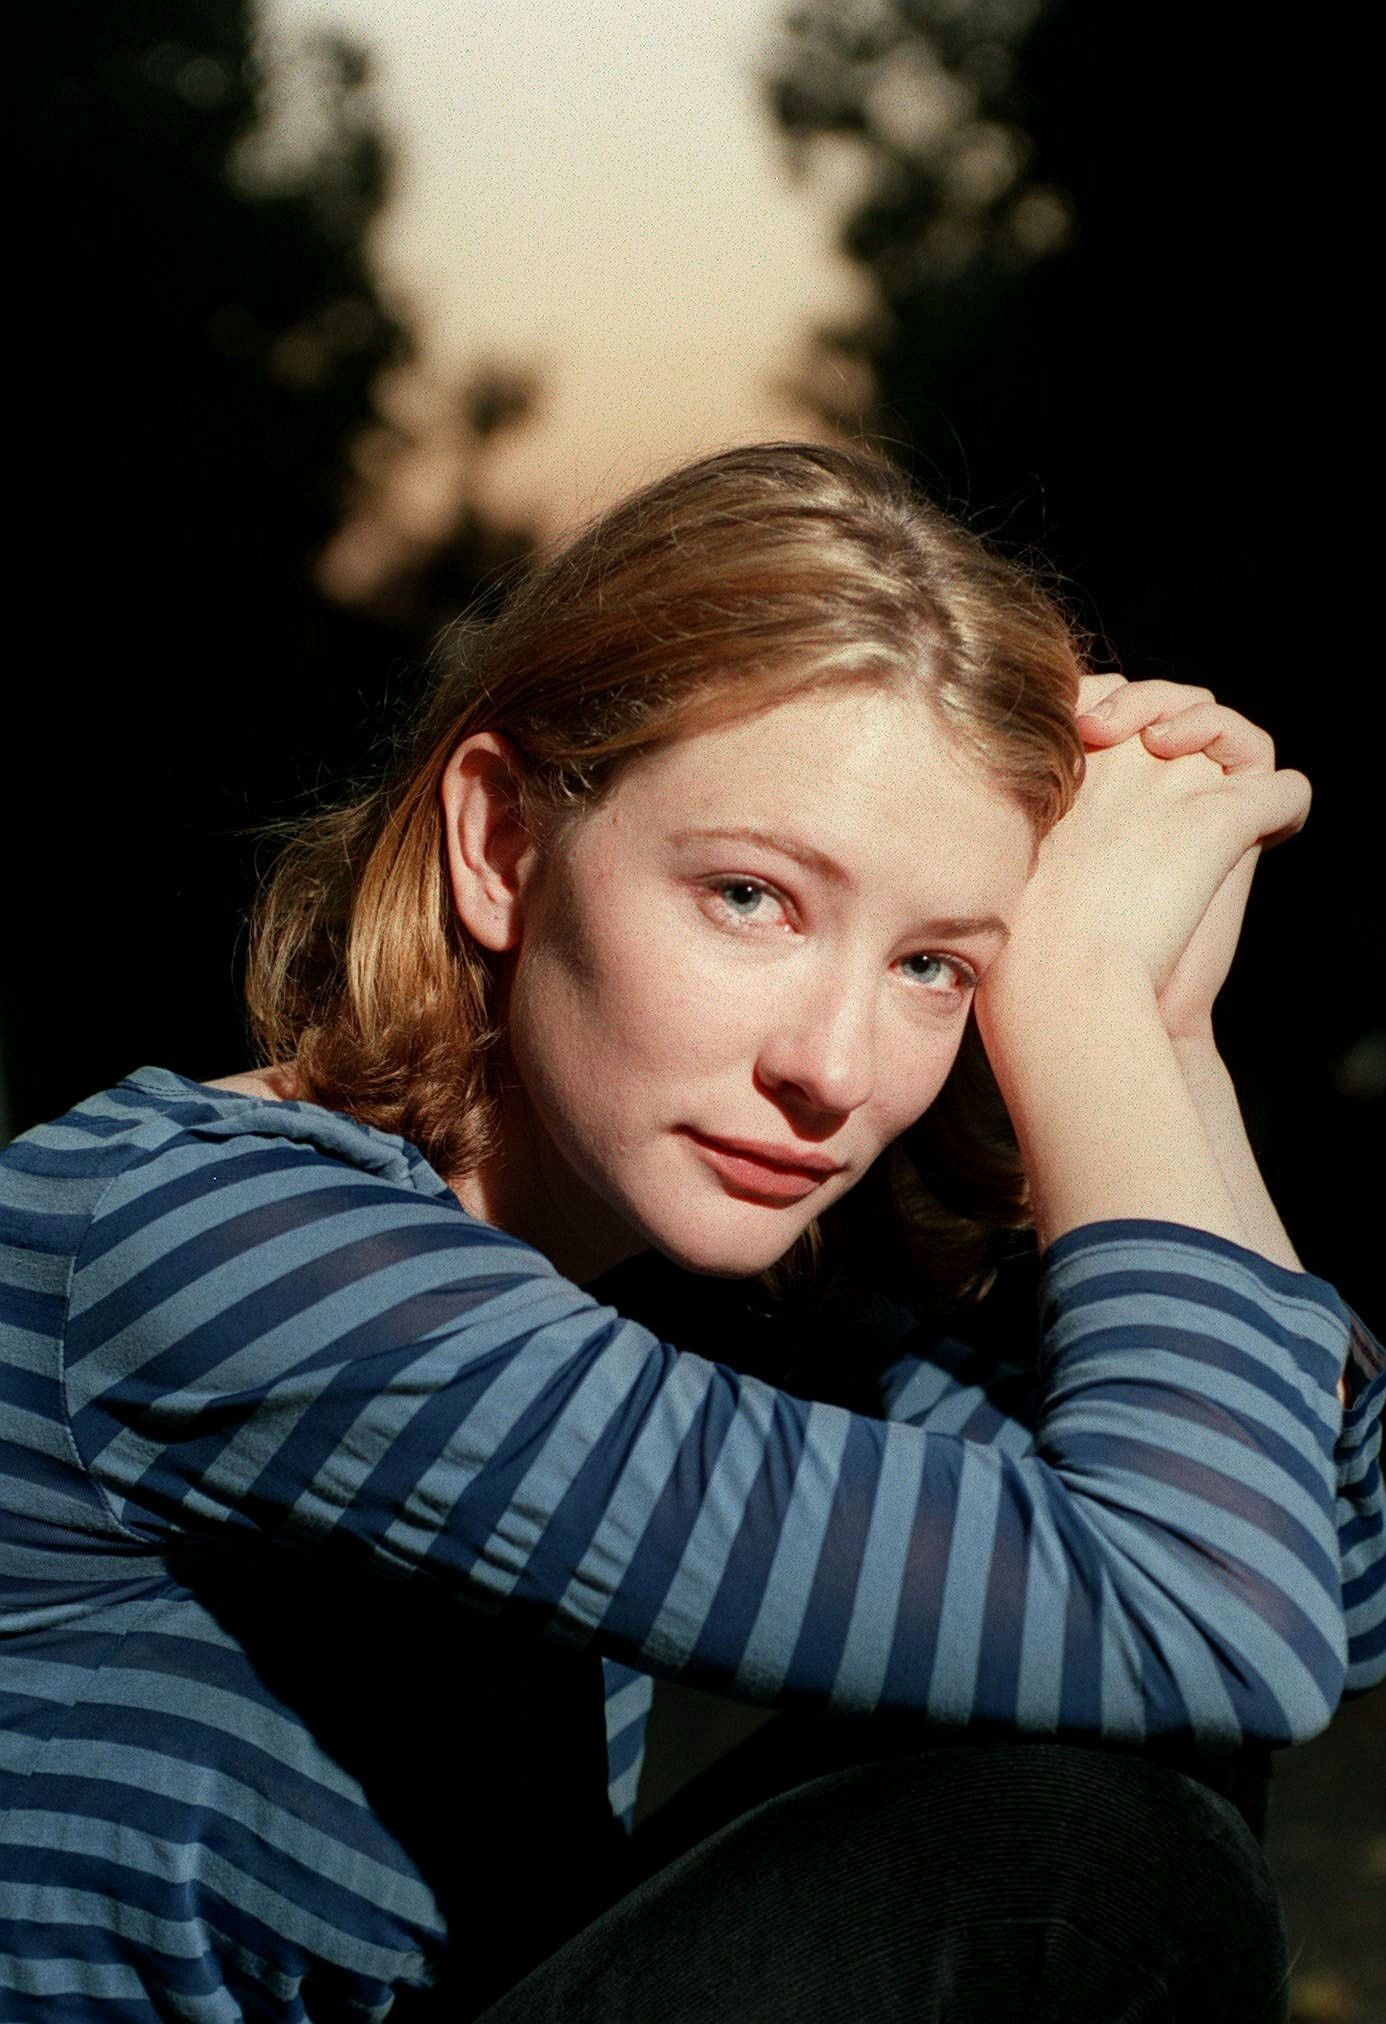 From Cate blanchett young, Cate